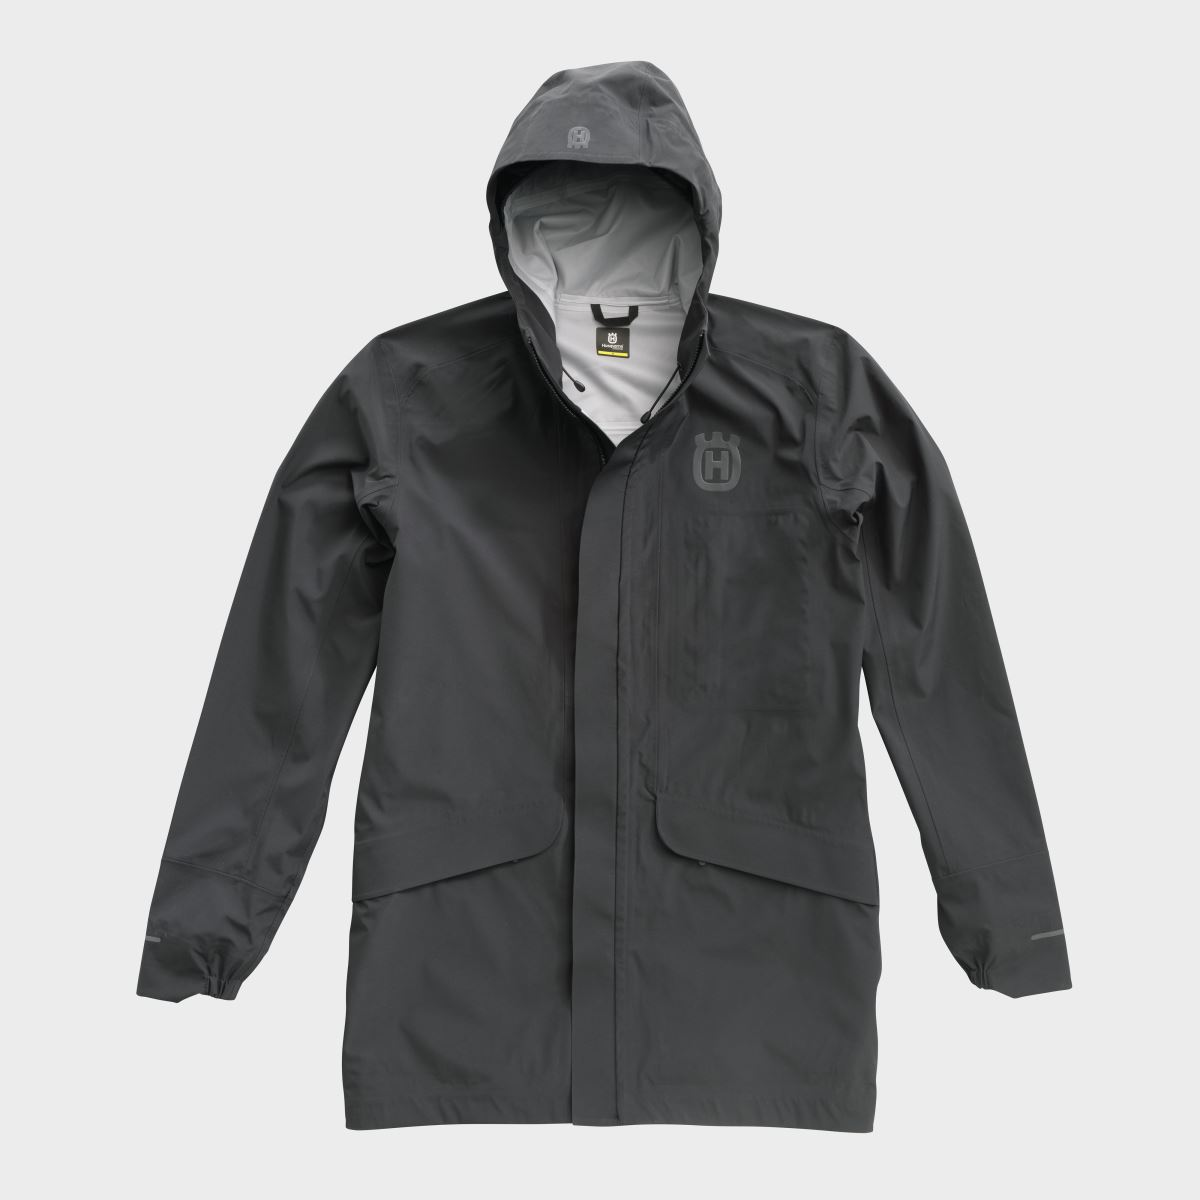 REMOTE PARKA - front - CASUAL CLOTHING COLLECTION 2020